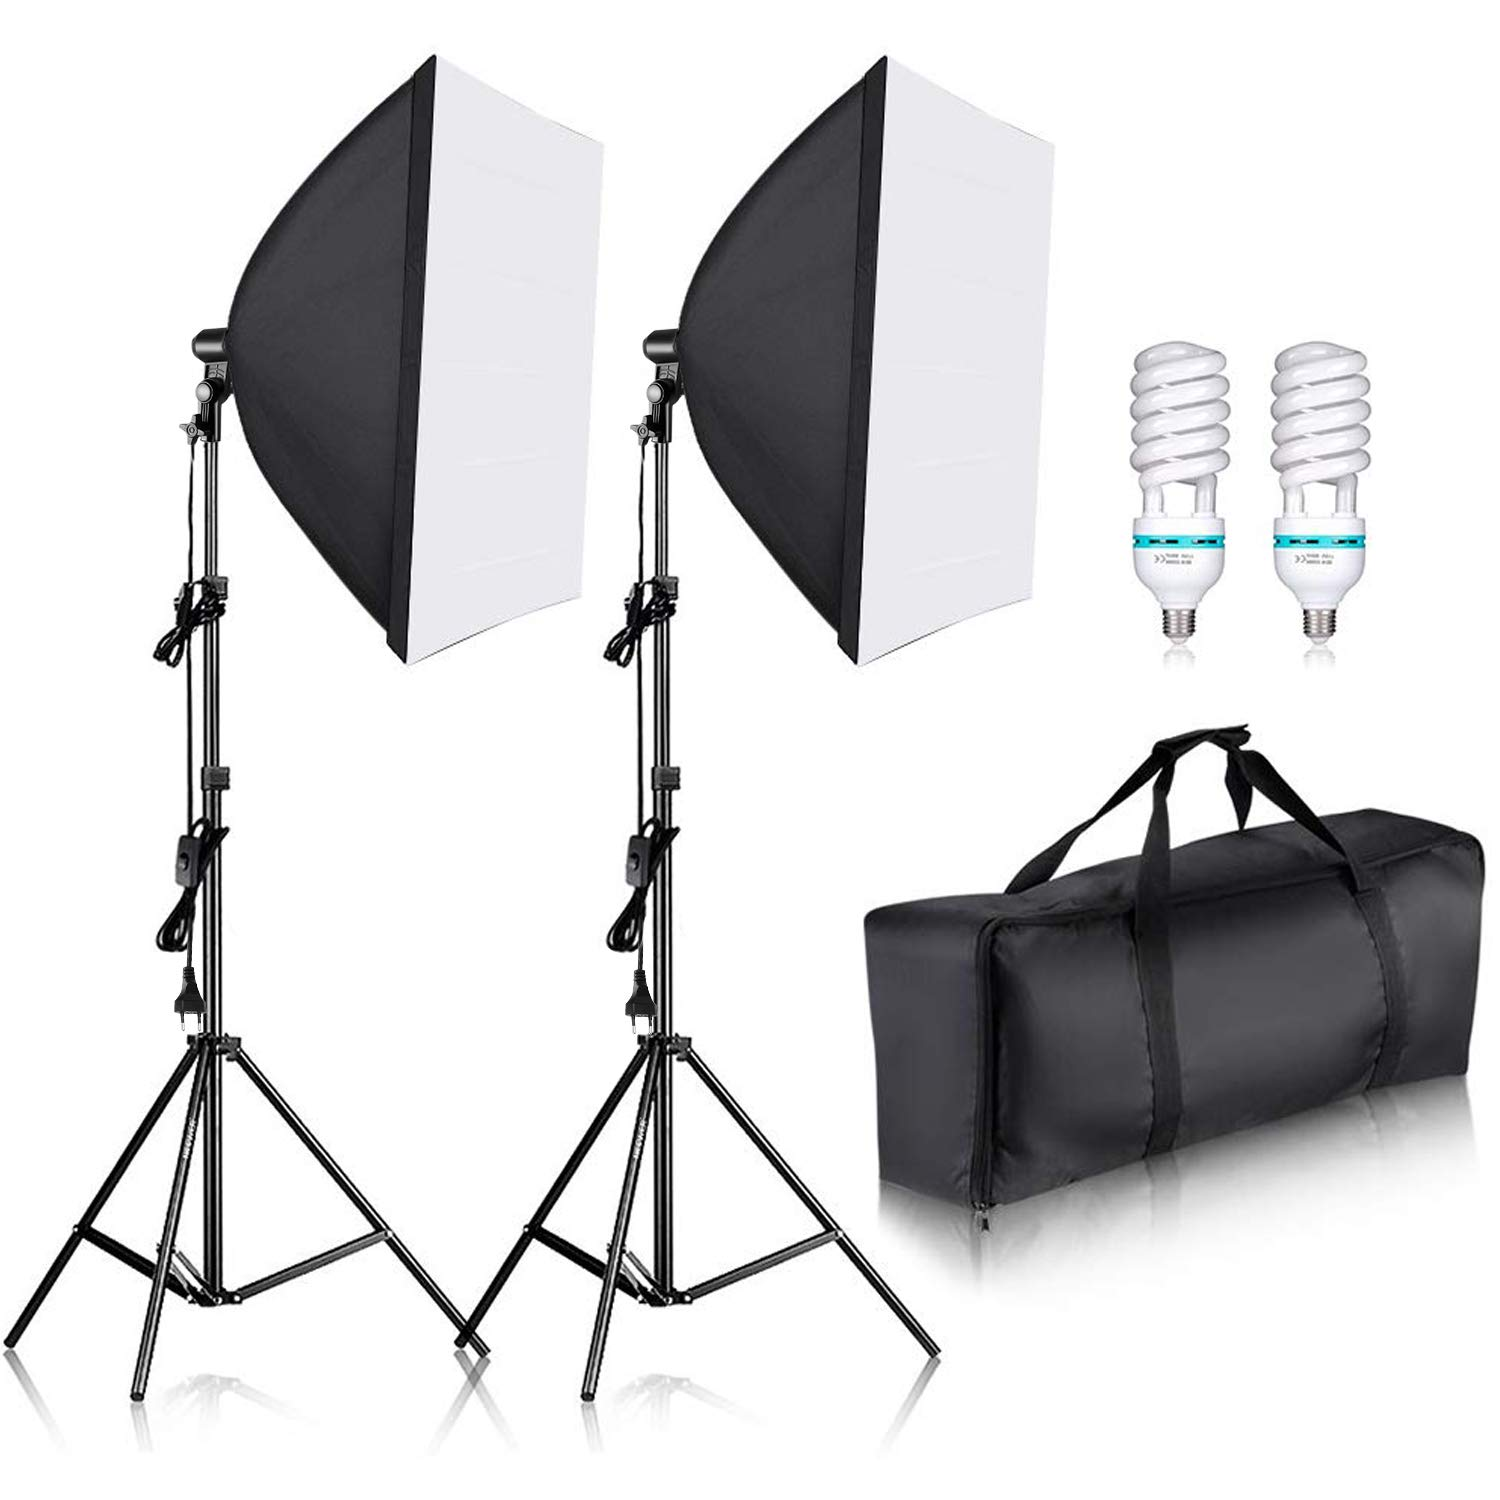 Neewer 700W Pro Fotografía Kit de Iluminación de Luz Softbox – 2 Packs 60×60 centímetros Softbox con Zócalo E27 para Retratos de Estudio Fotográfico, Fotos de Productos y Videos: Amazon.es: Electrónica